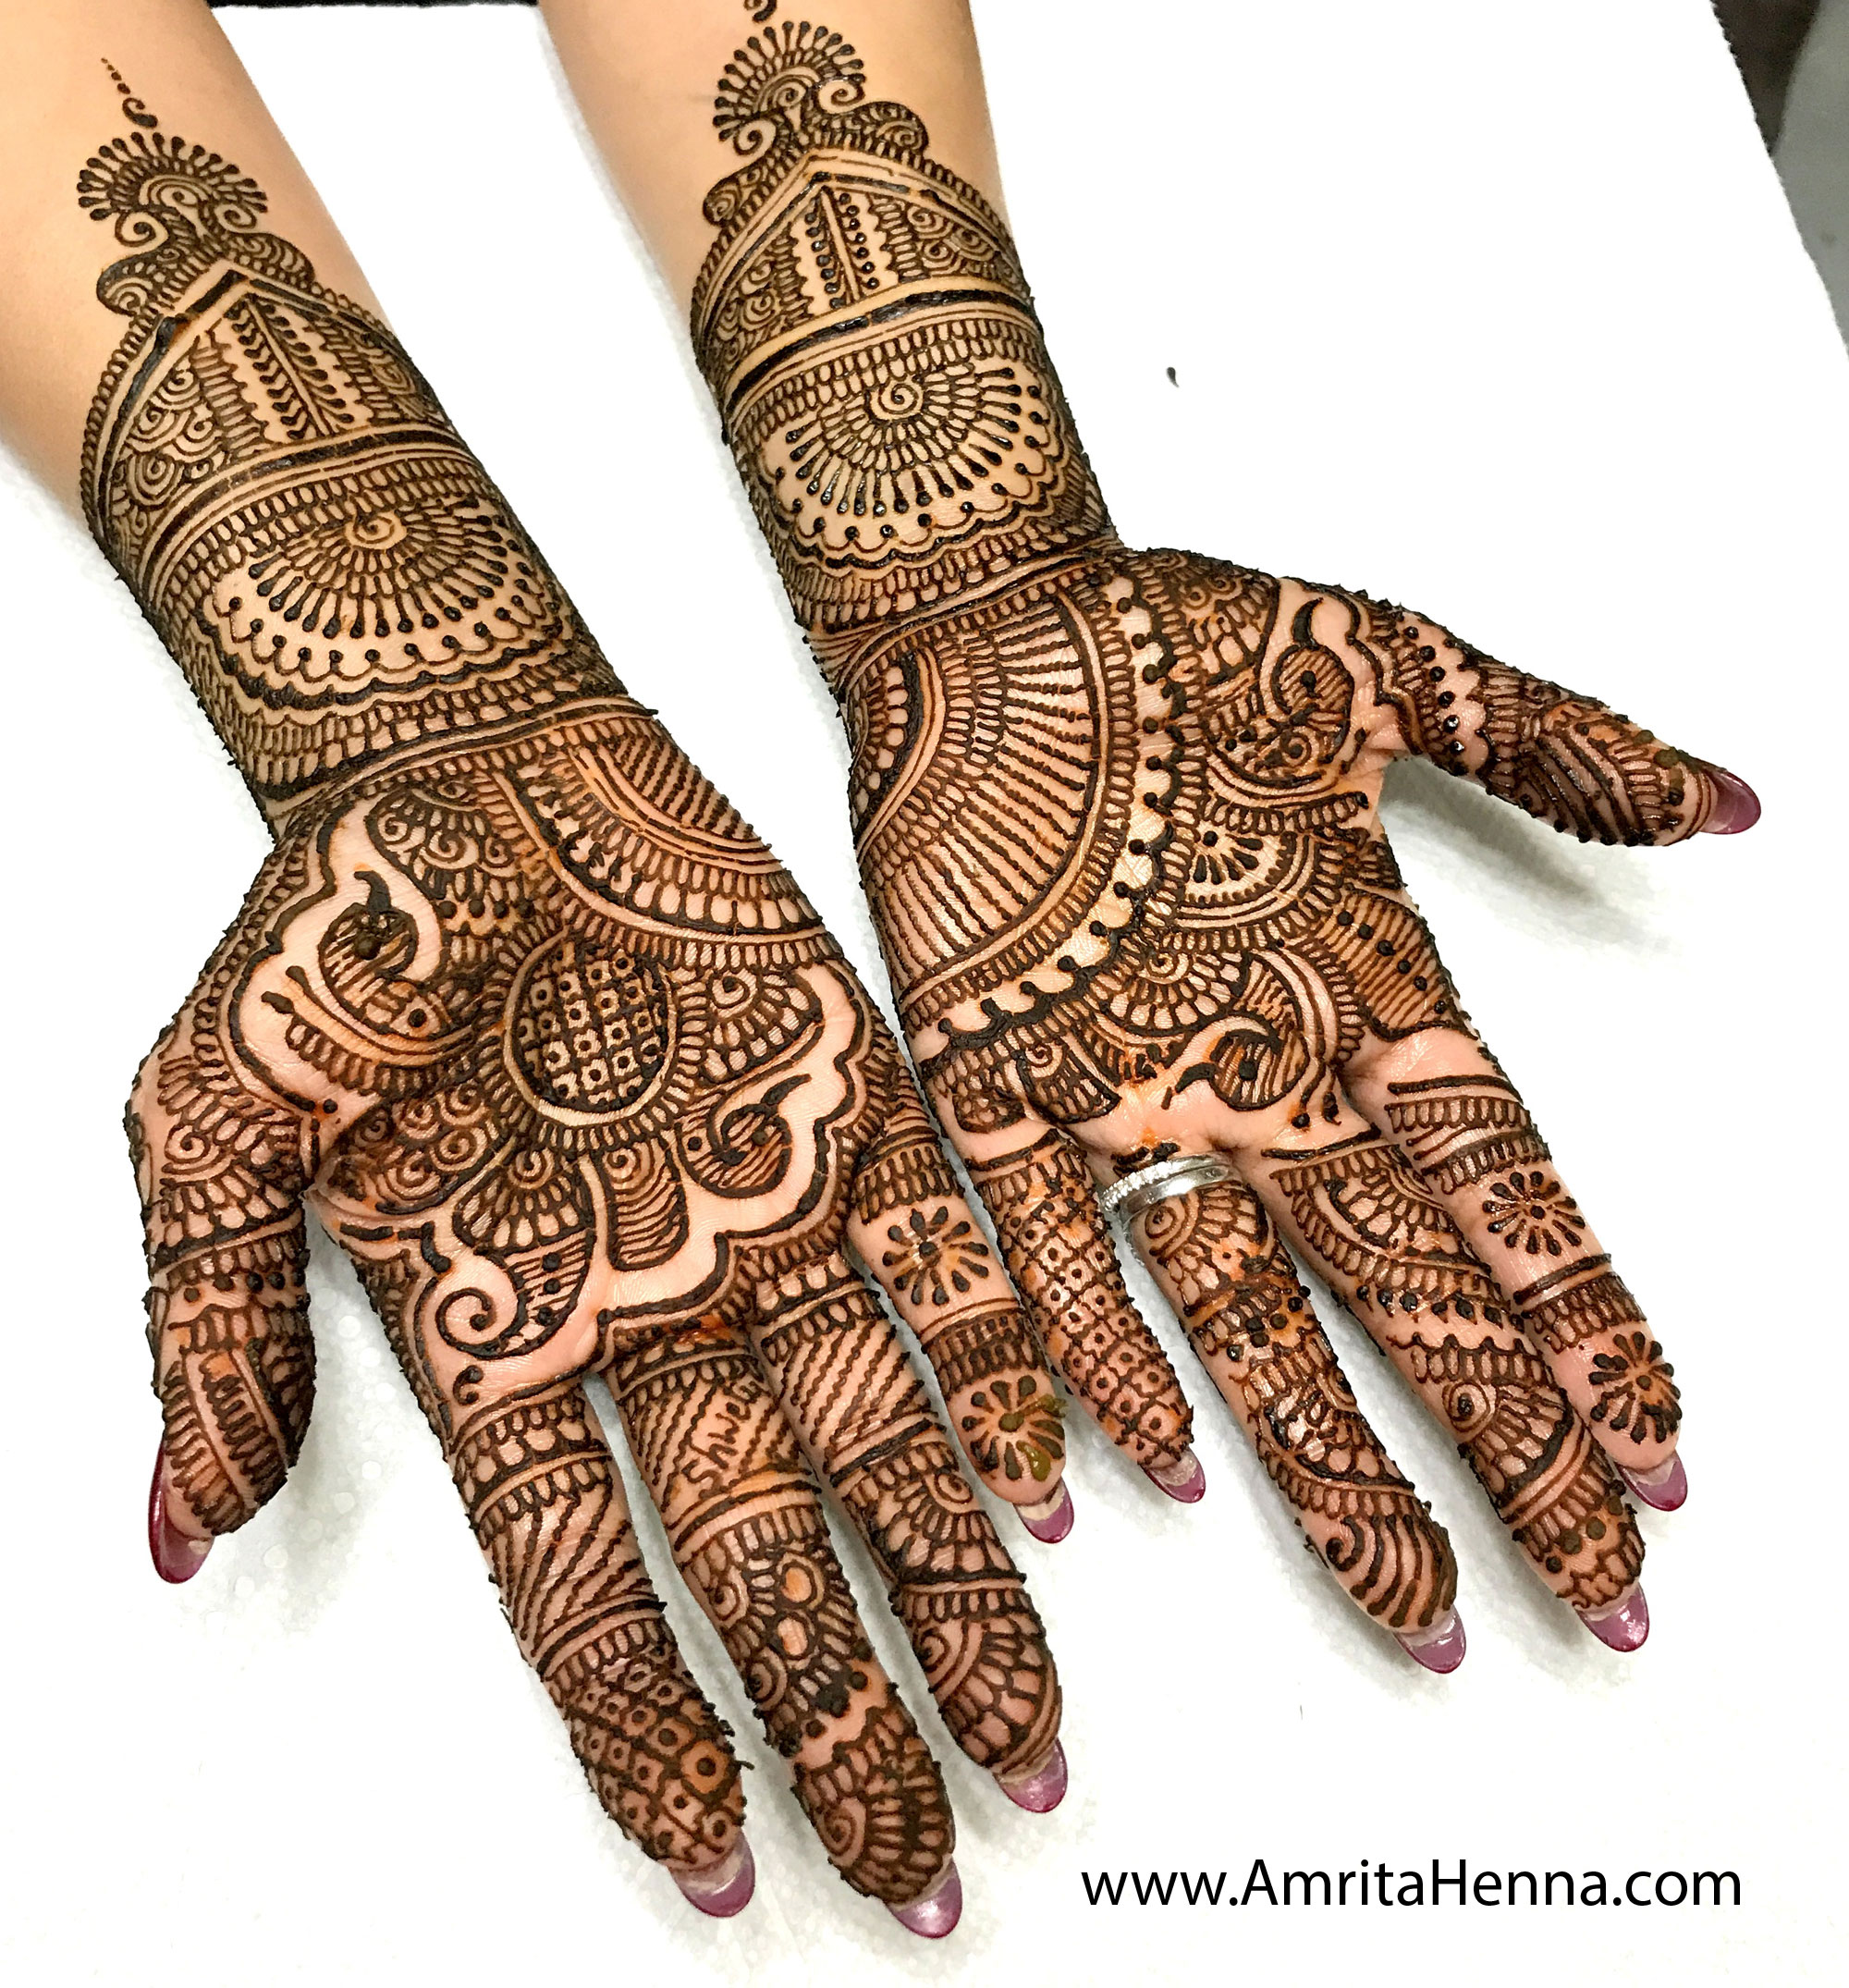 Mehndi Traditional Designs : Top intricate traditional indian bridal henna mehndi designs tattoo art by amrita